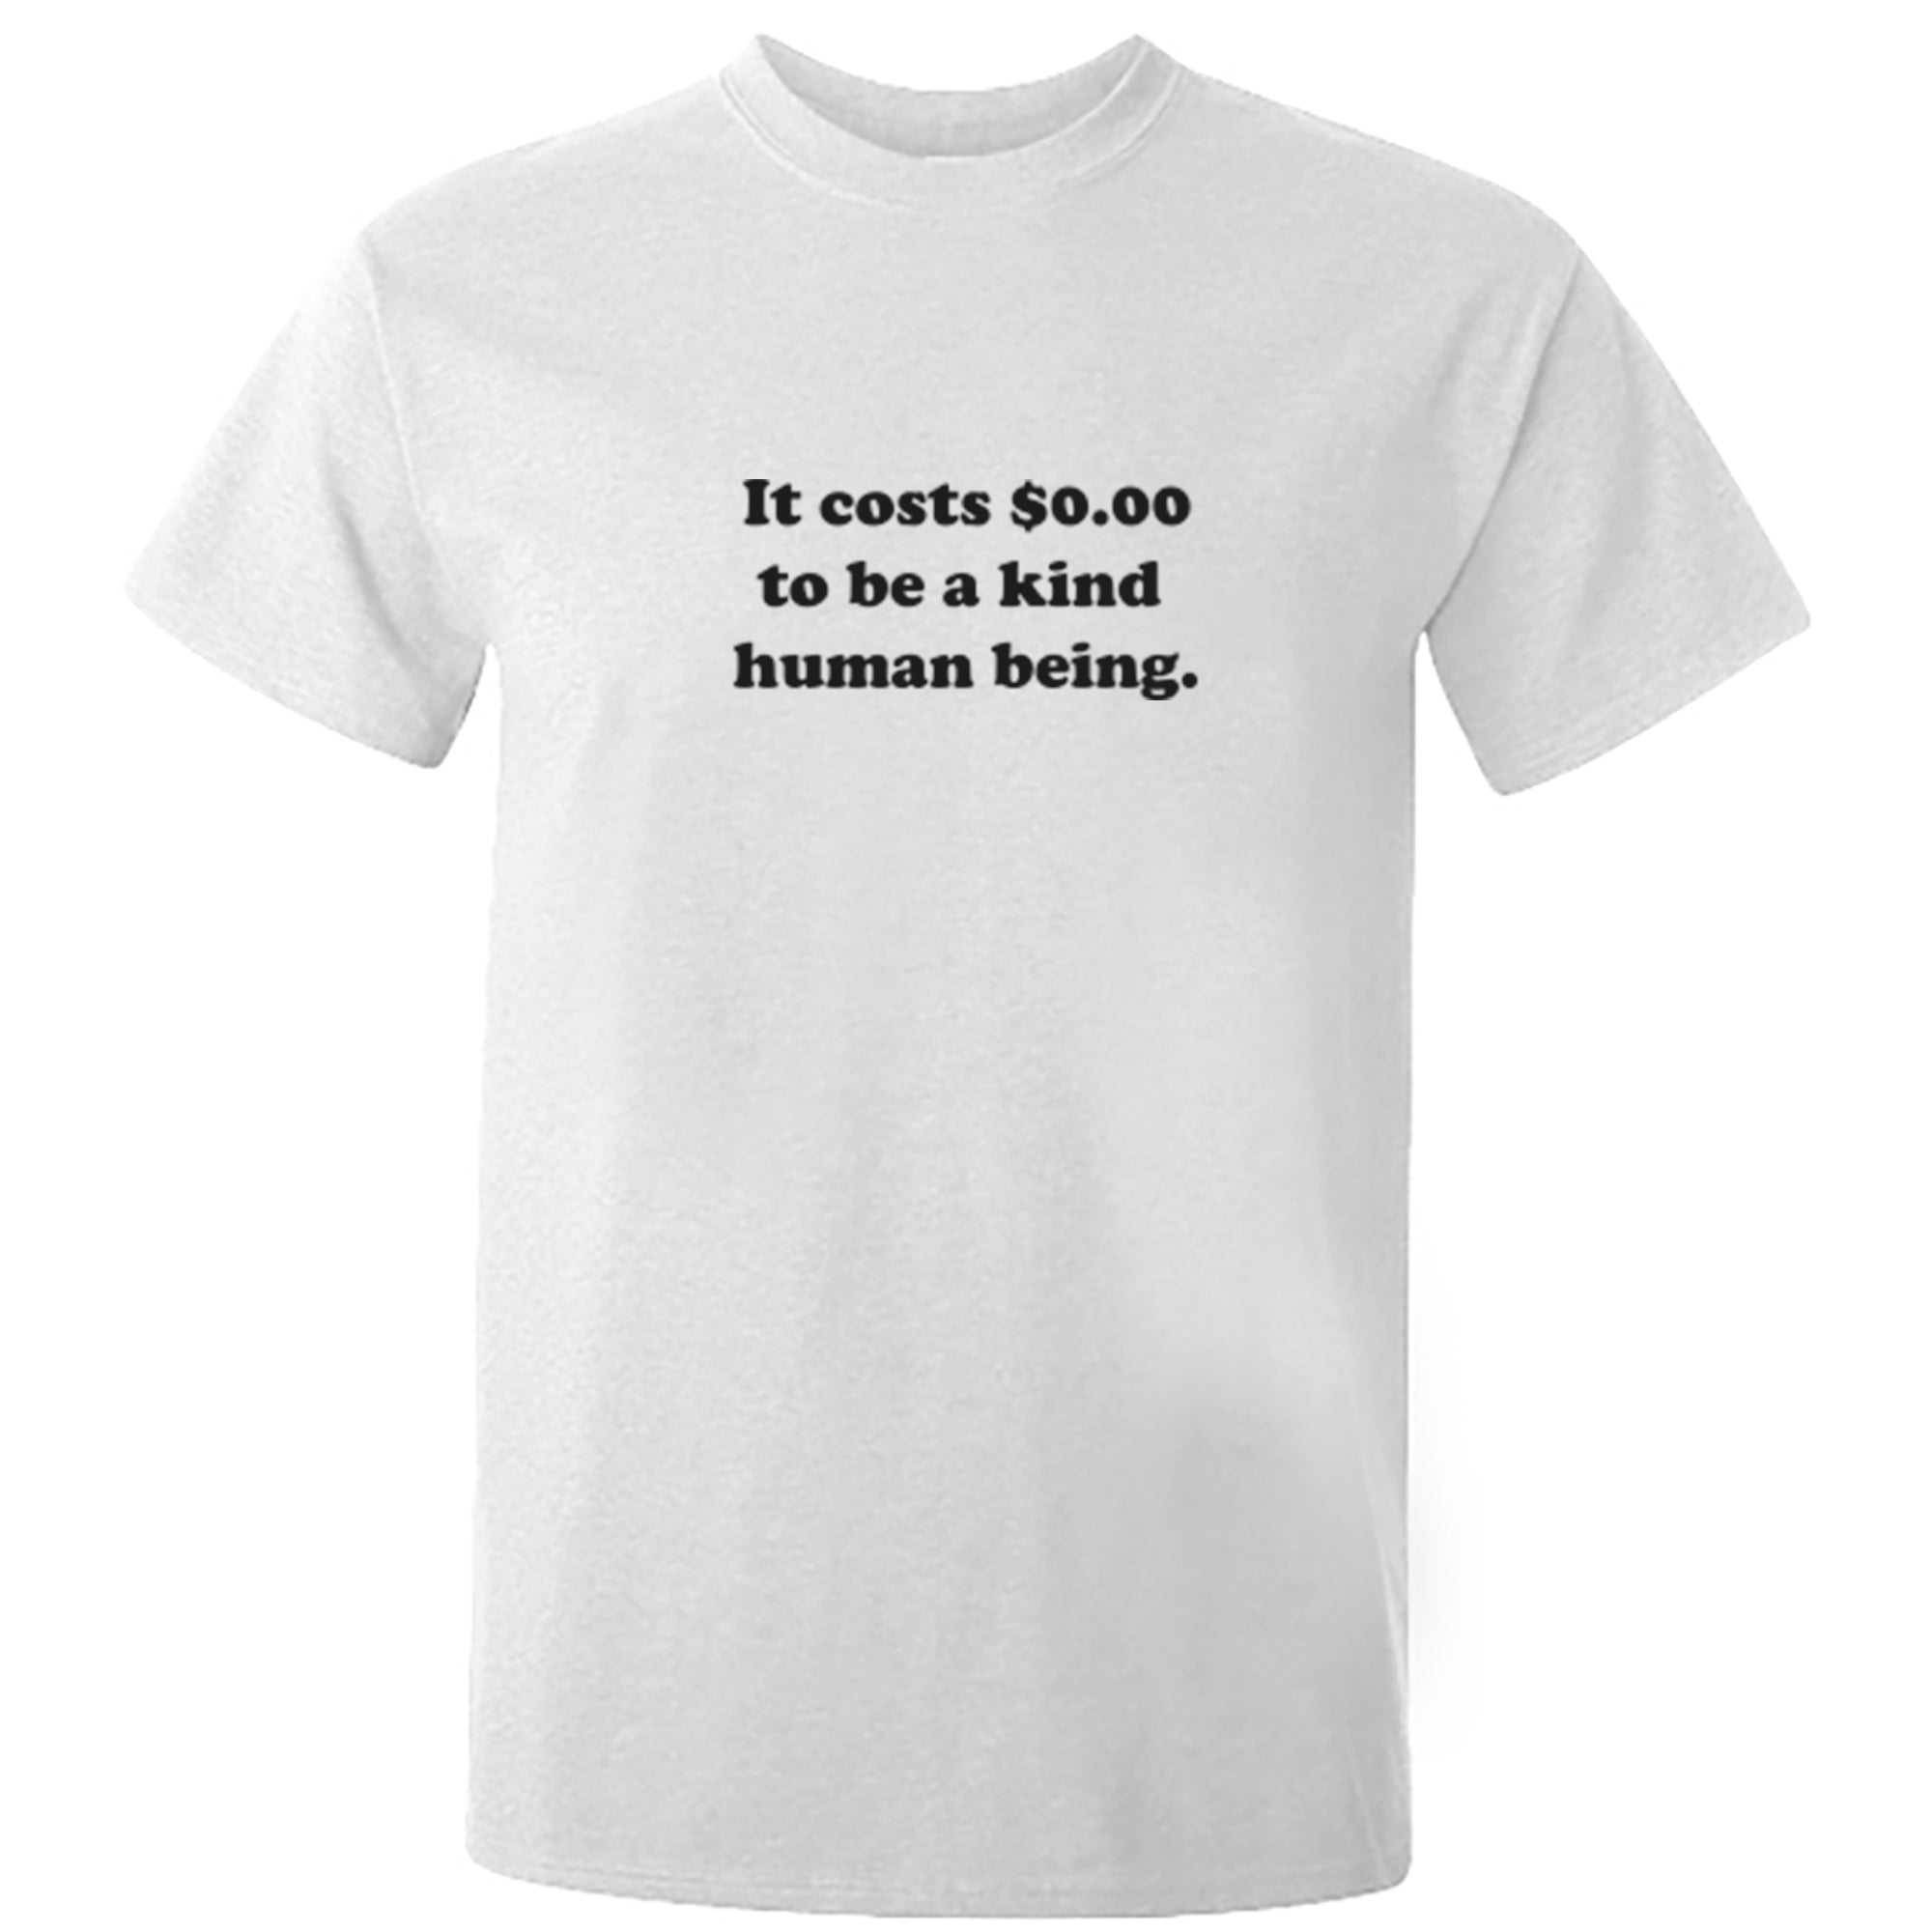 It Costs $0.00 To Be A Kind Human Being Unisex Fit T-Shirt S0997 - Illustrated Identity Ltd.